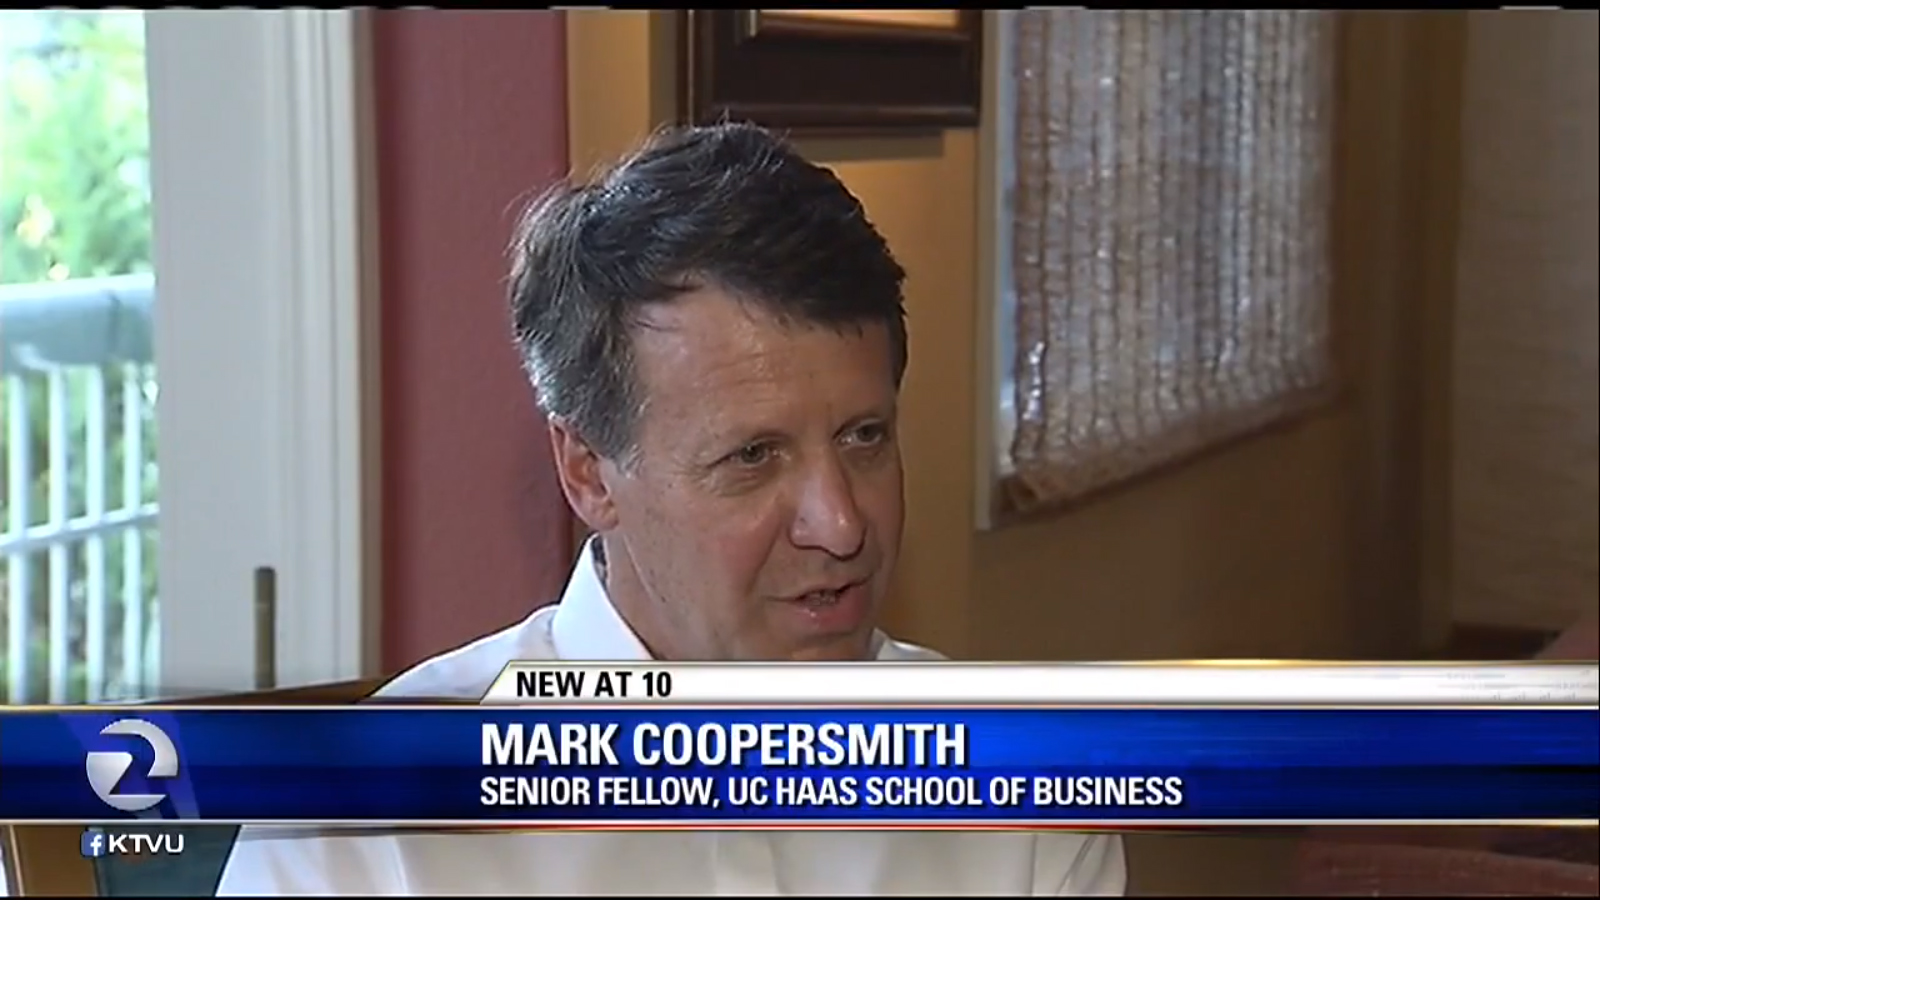 Mark Coopersmith Media Commentary niman perdue 2015-9-11